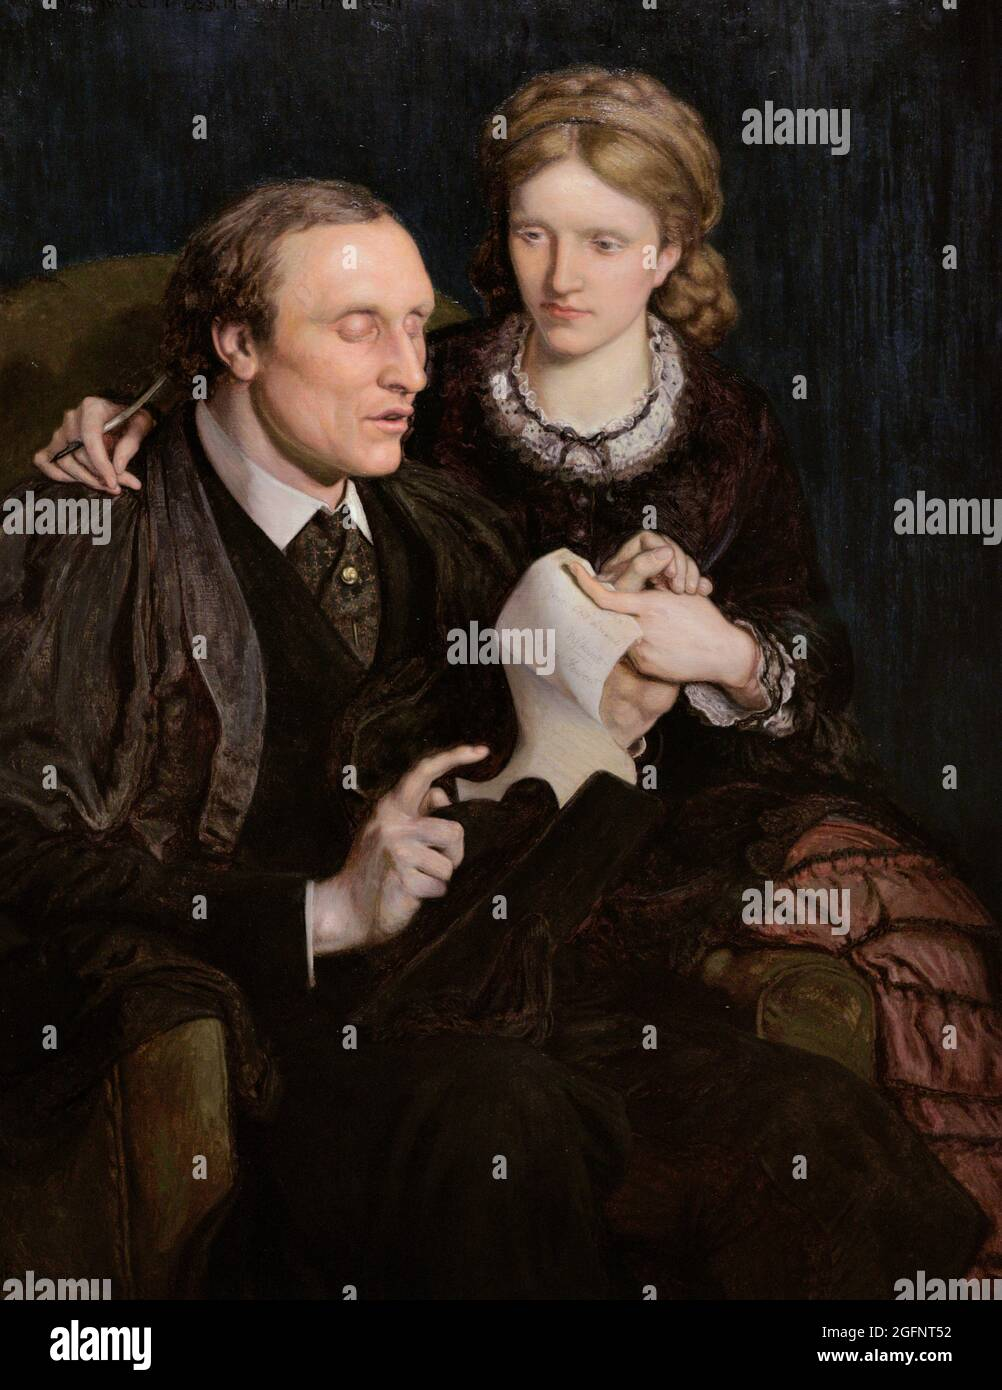 Henry Fawcett (1833-1884). British academic and economist, blind due to a shooting accident. Millicent Garrett Fawcett (1847-1929). English suffragist activist and writer. Portrait of the Fawcett couple by Ford Madox Brown (1821-1893). Oil on canvas (108,6 x 83,8 cm), 1872. National Portrait Gallery. London, England, United Kingdom. Stock Photo